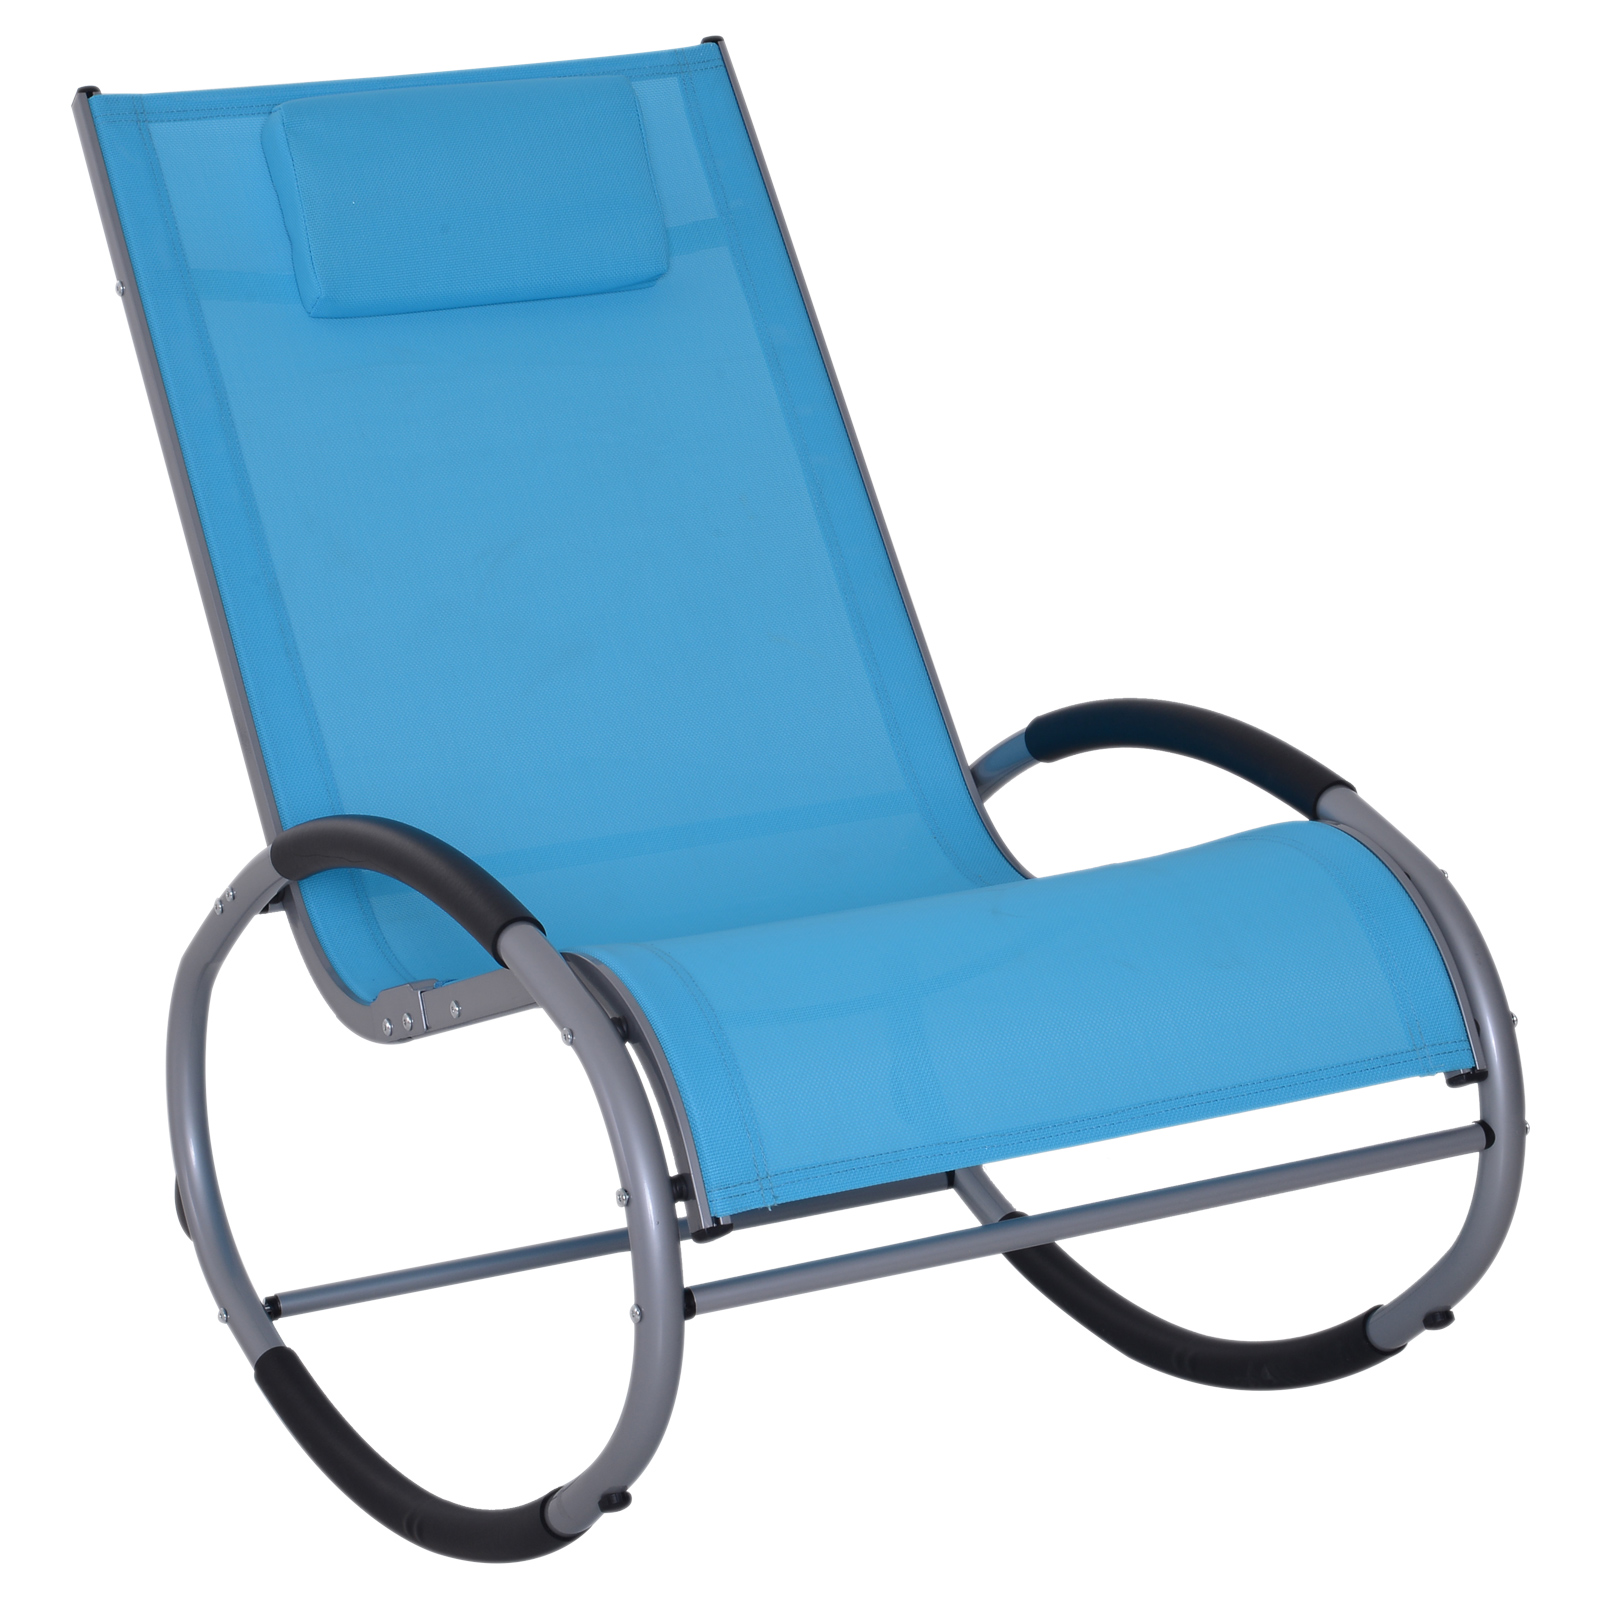 Tommy Bahama Outdoor Cushions, Outsunny Zero Gravity Rocking Chaise Lounge Sling Reclining Chair Blue Outdoor Rocking Chairs Aosom